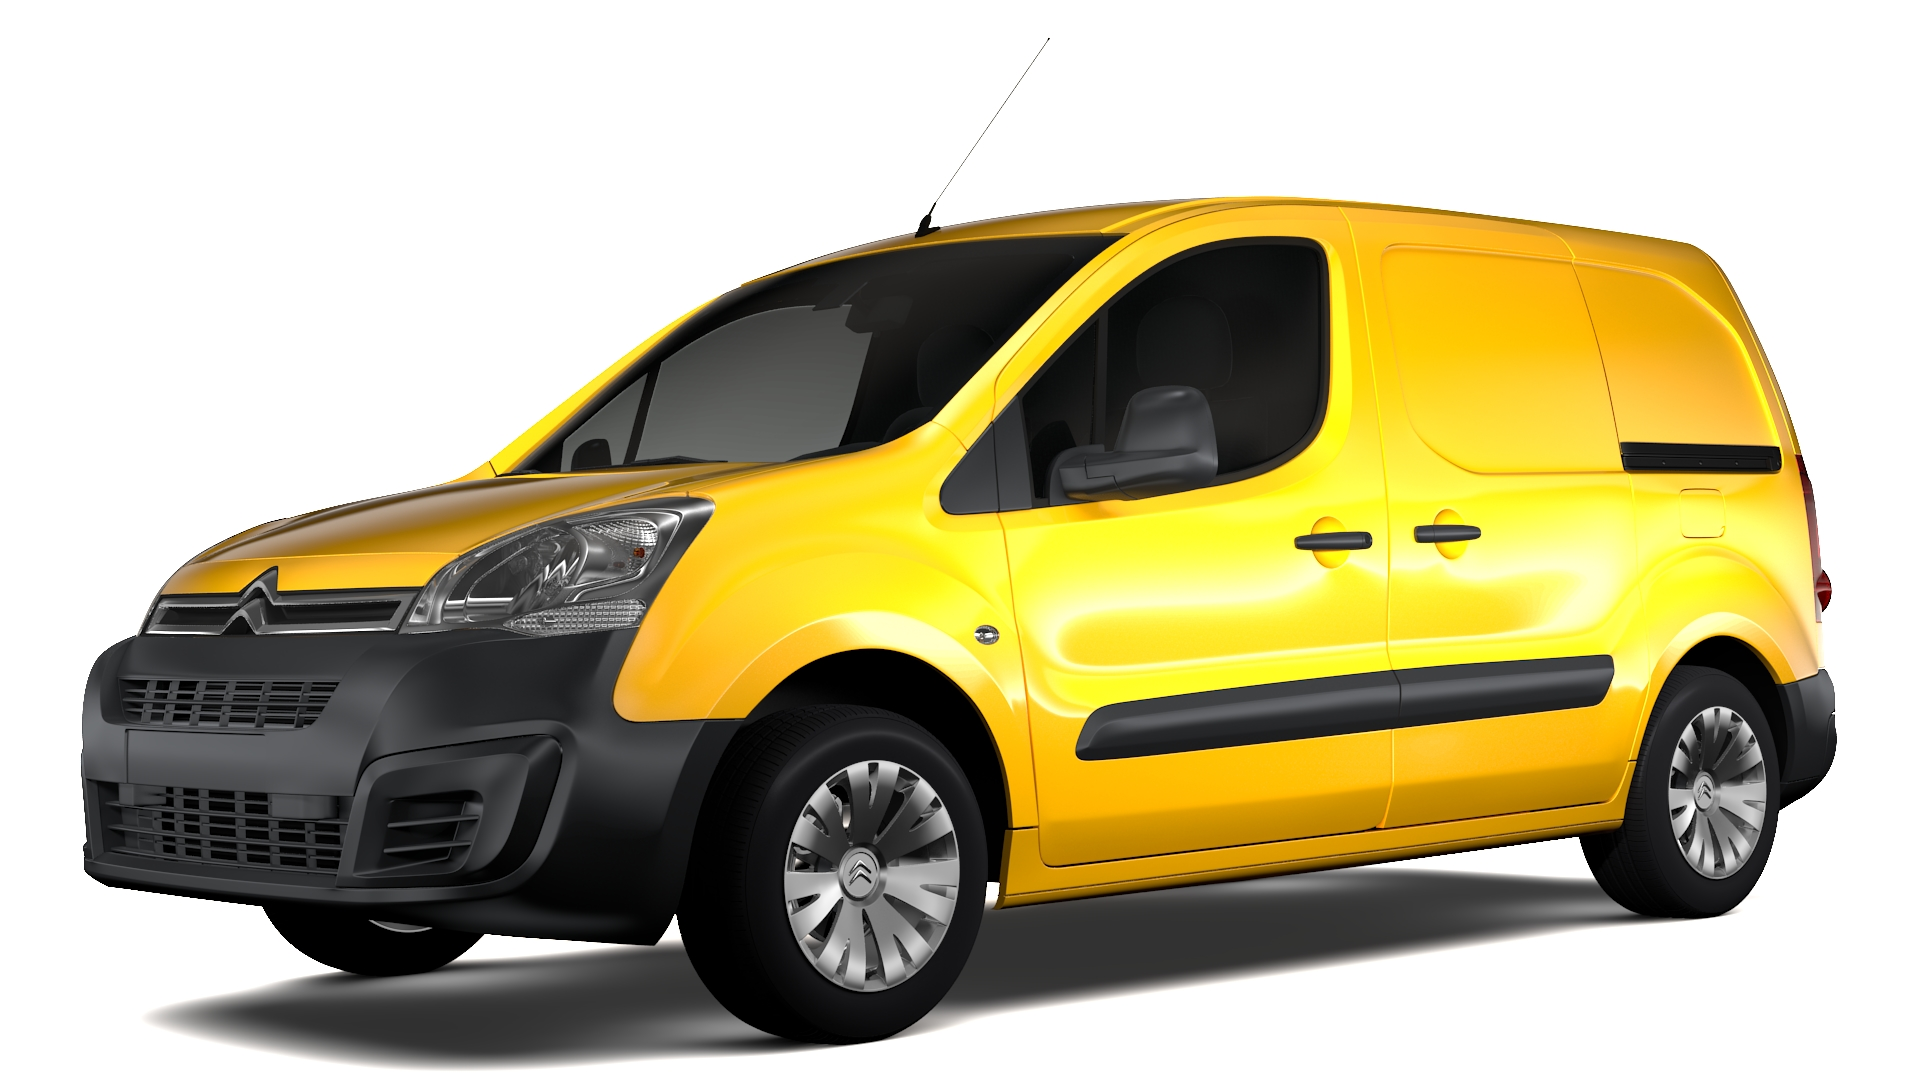 citroen berlingo van l1 2slidedoors 2017 3d model buy citroen berlingo van l1 2slidedoors 2017. Black Bedroom Furniture Sets. Home Design Ideas